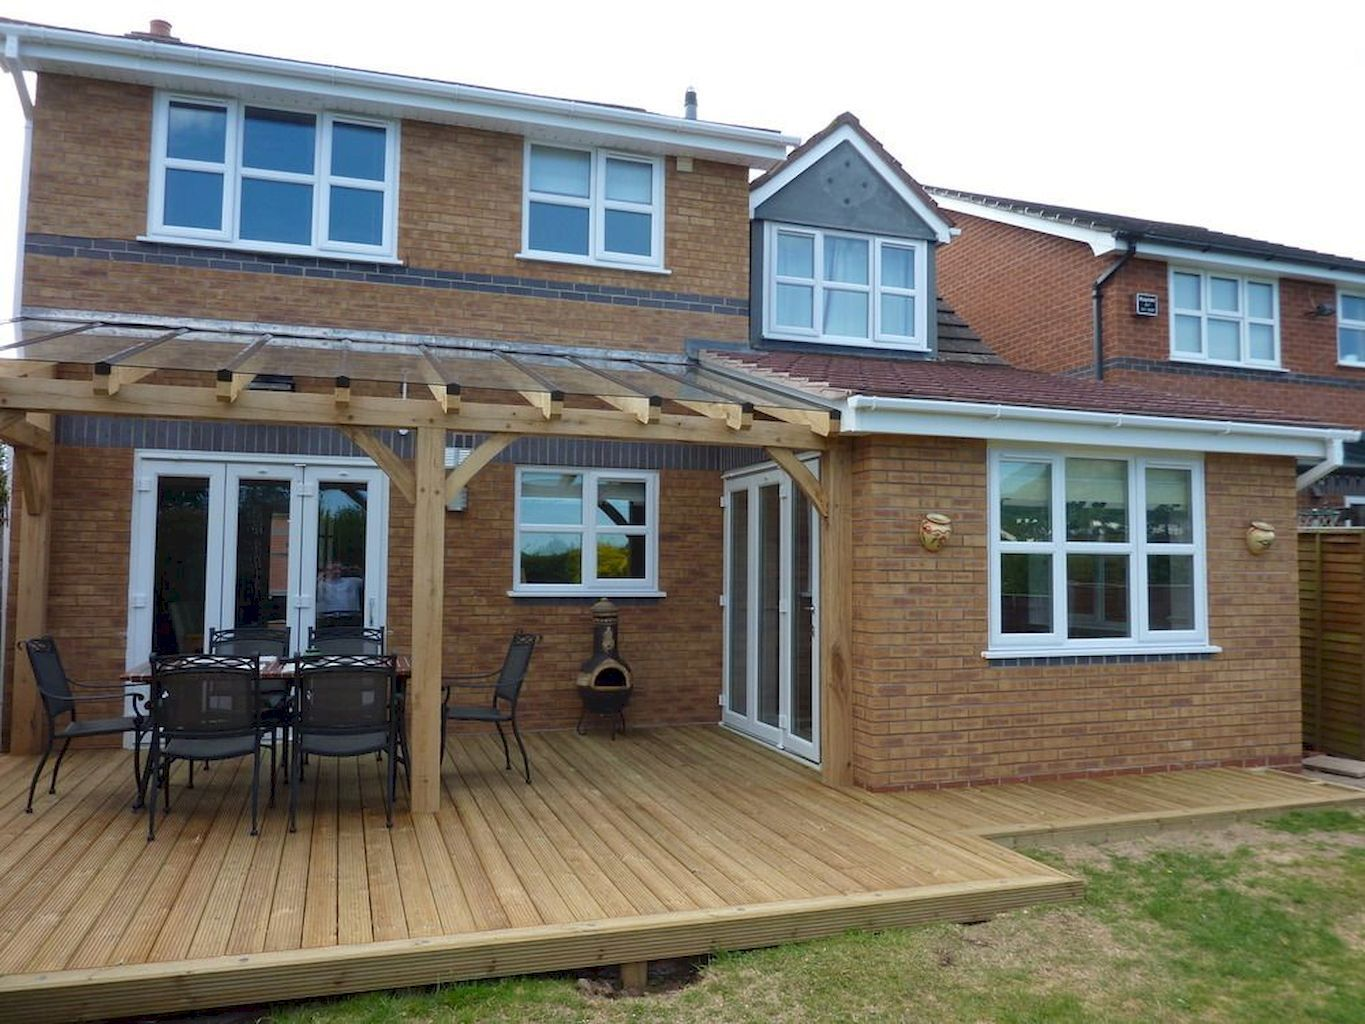 12 Ineffable Bedroom Canopy Life Ideas Garden Room Extensions Pergola Patio Pergola Backyard deck ideas not attached to house